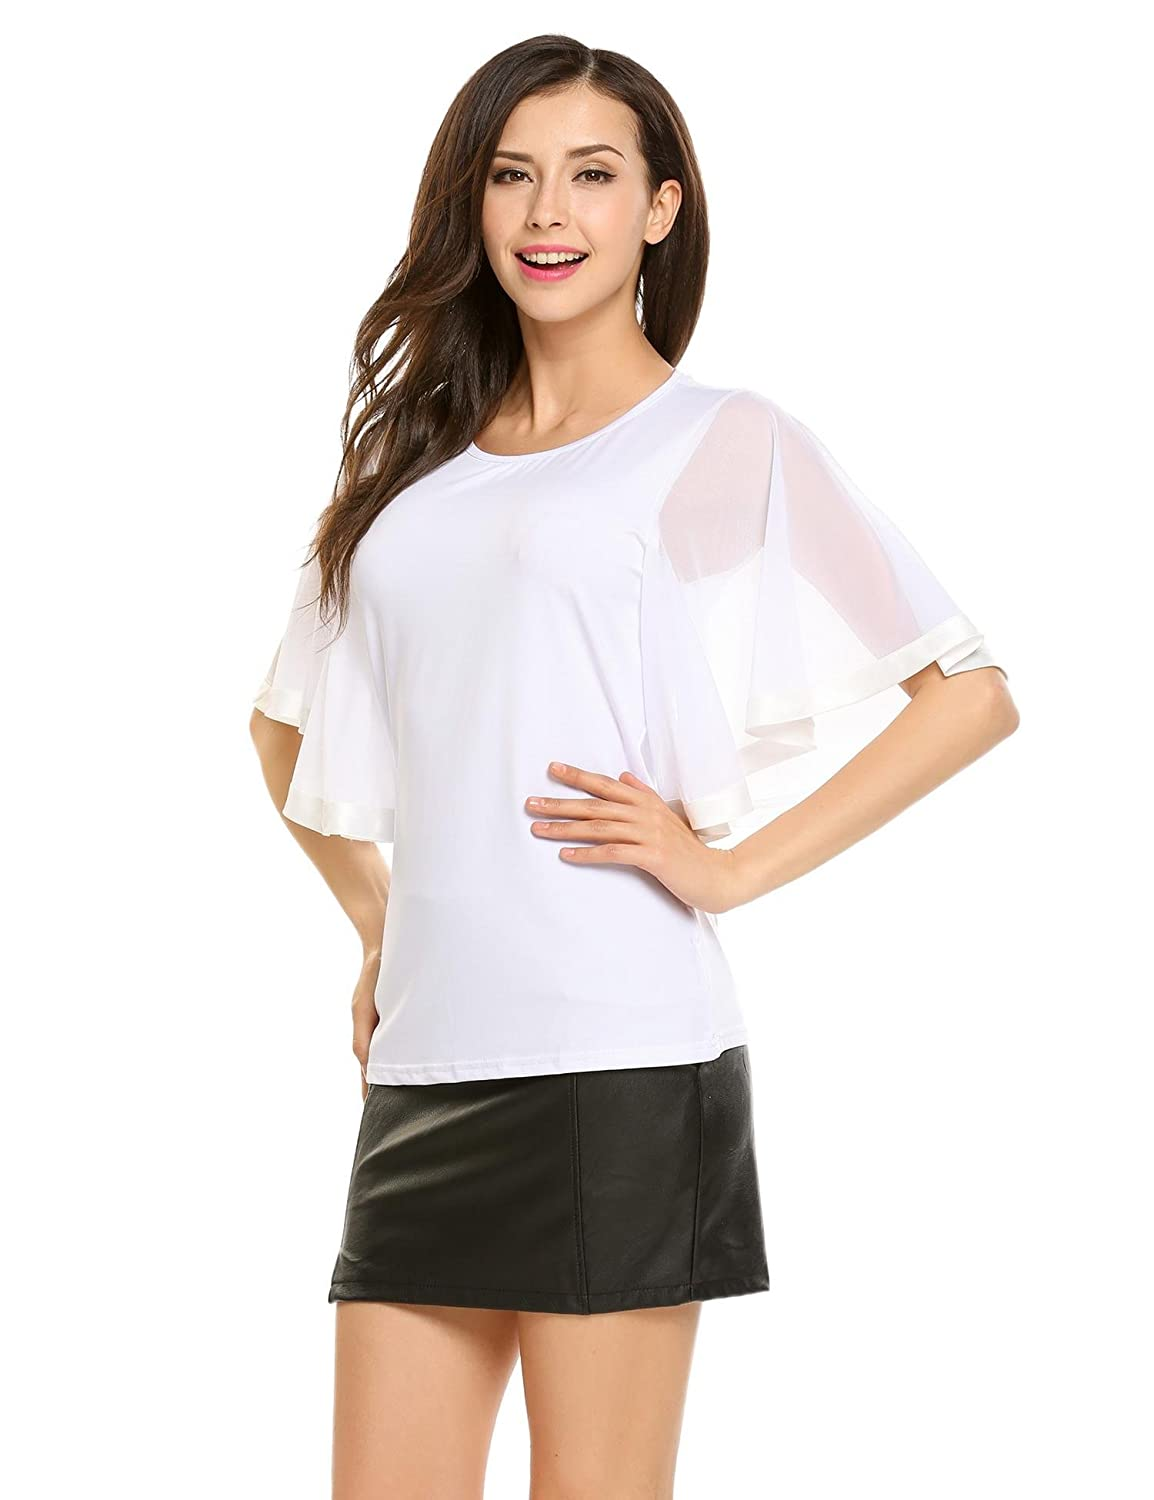 Zeagoo Womens Short Sleeve Round Neck Mesh Patchwork Top Shirt